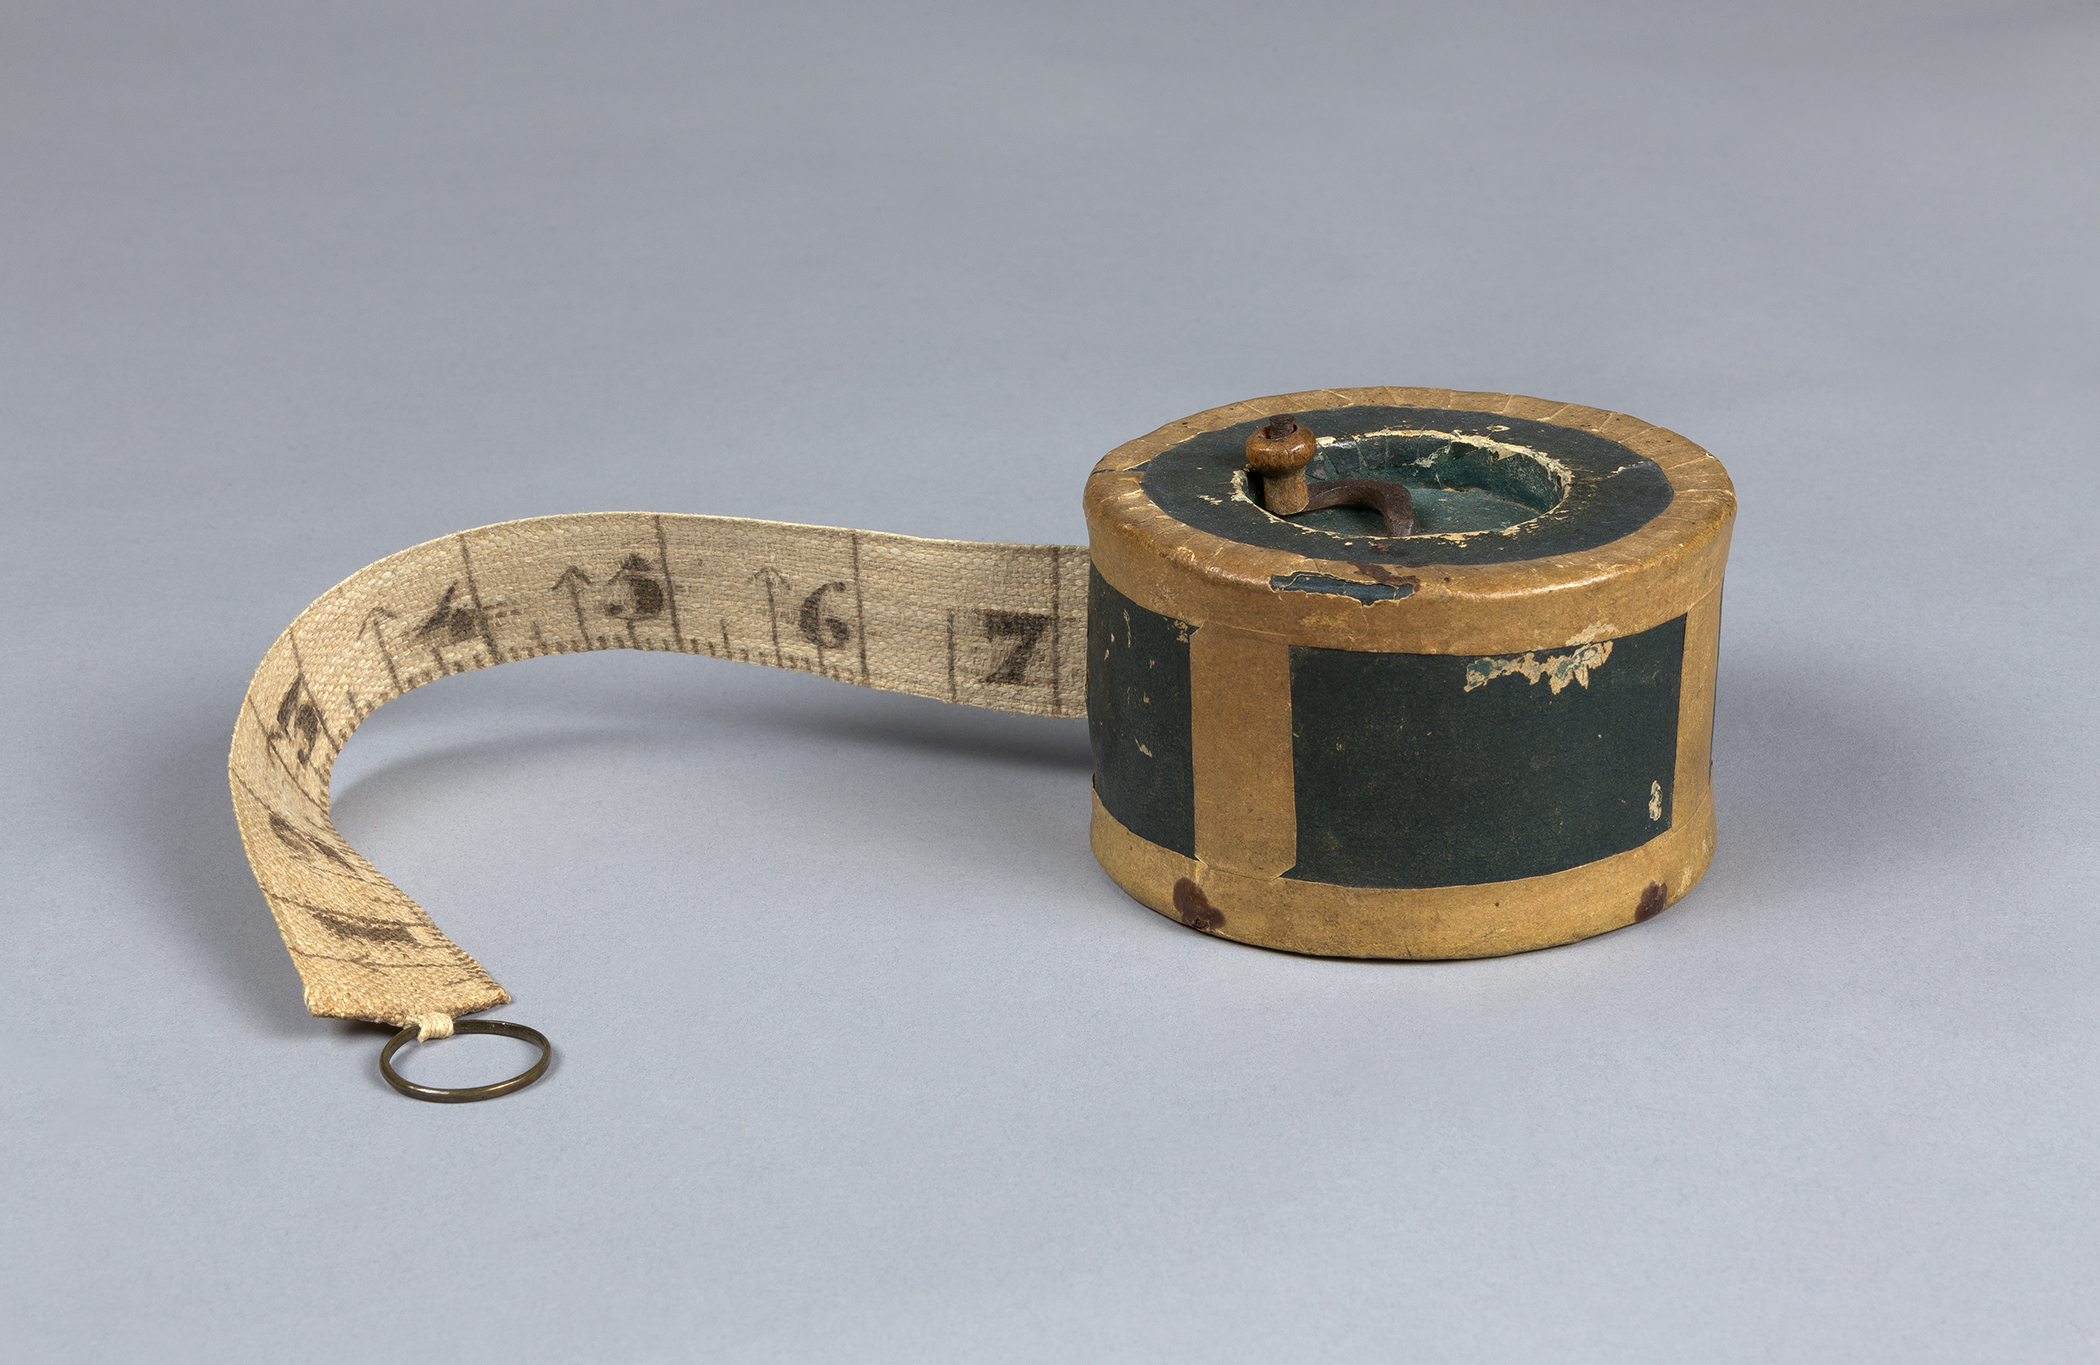 1954.0012.001 Box with measuring tape, view 1